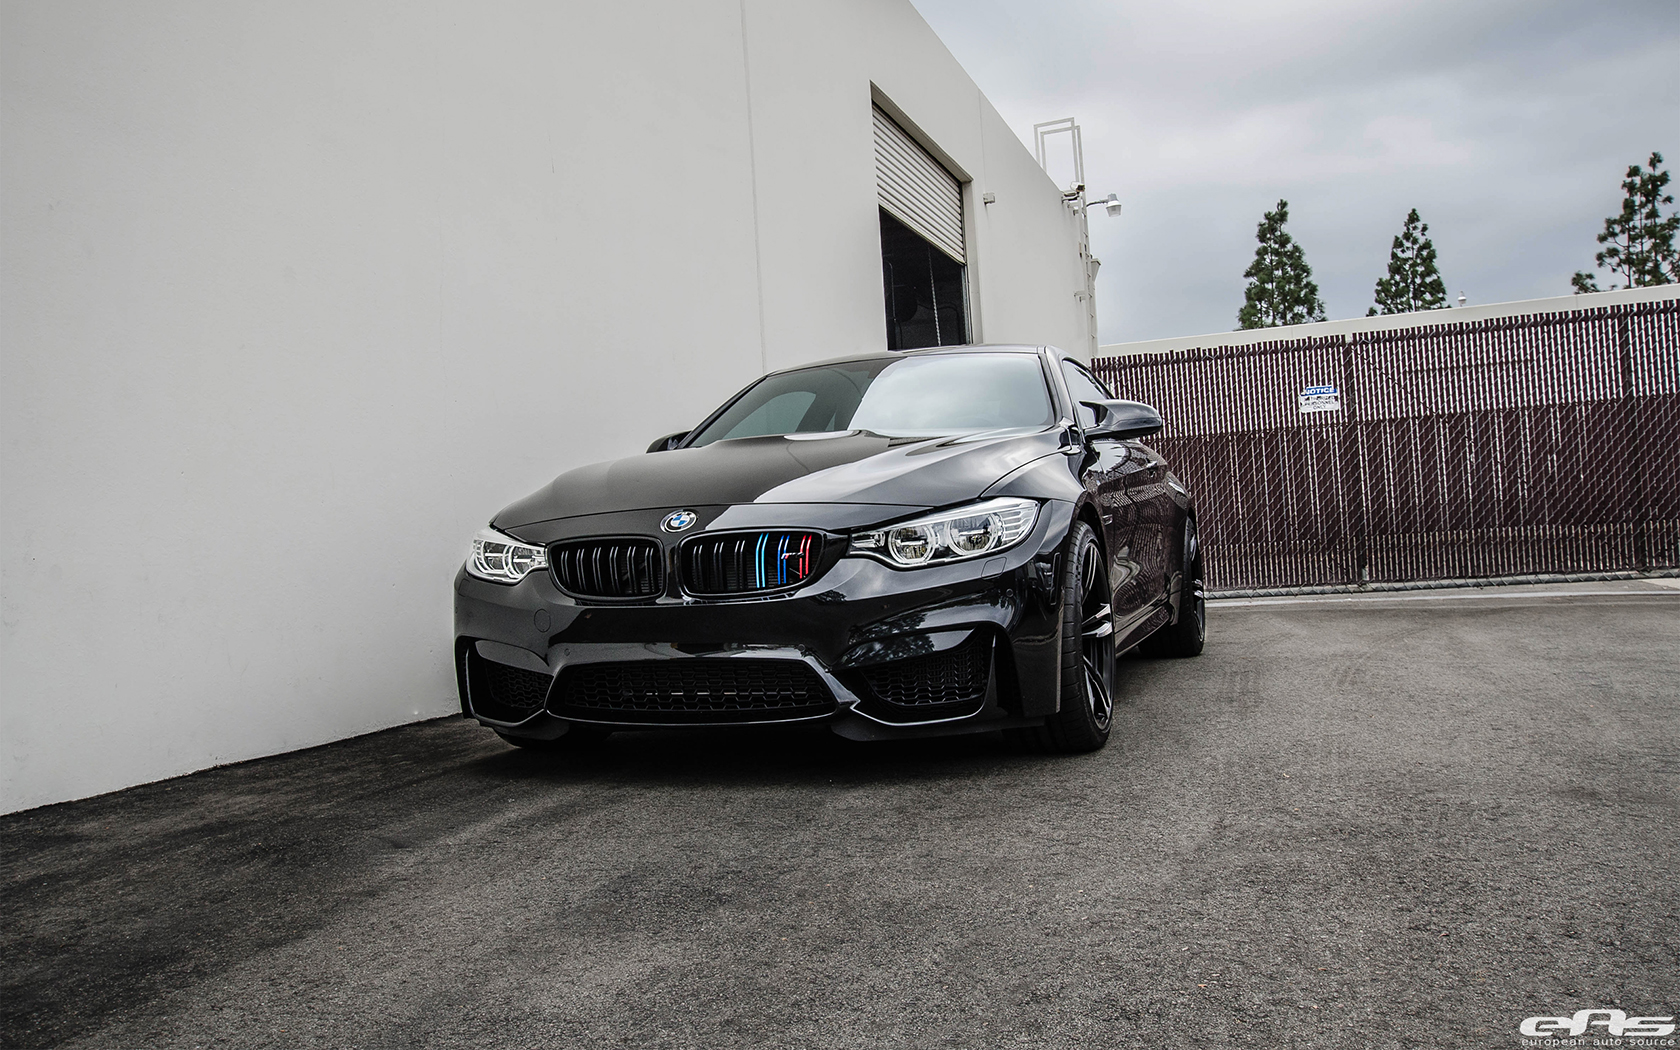 Blacked Out Bmw M4 Looks Mean